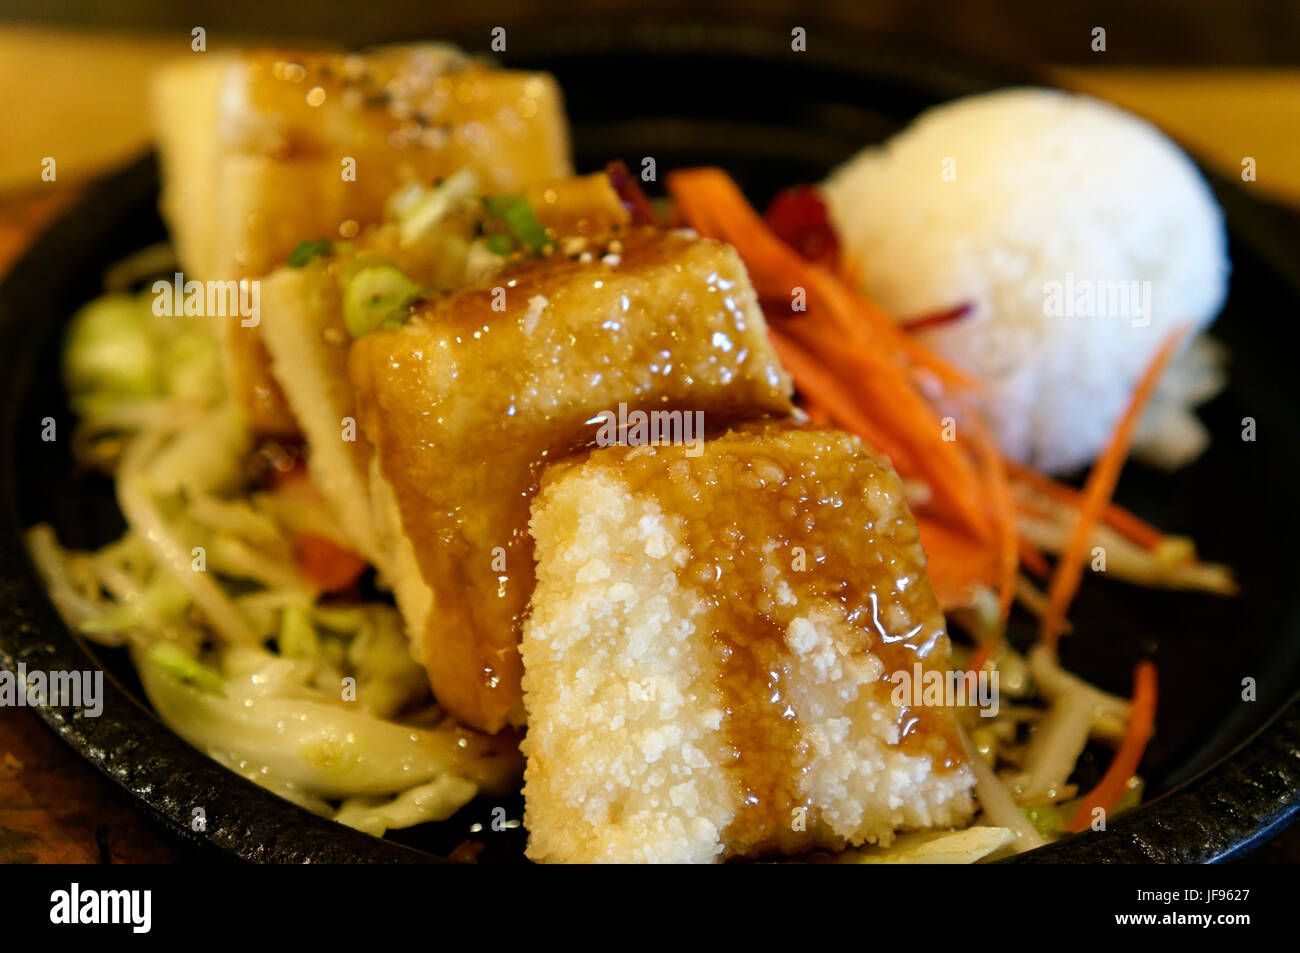 close-up-of-a-dish-of-japanese-tofu-teri